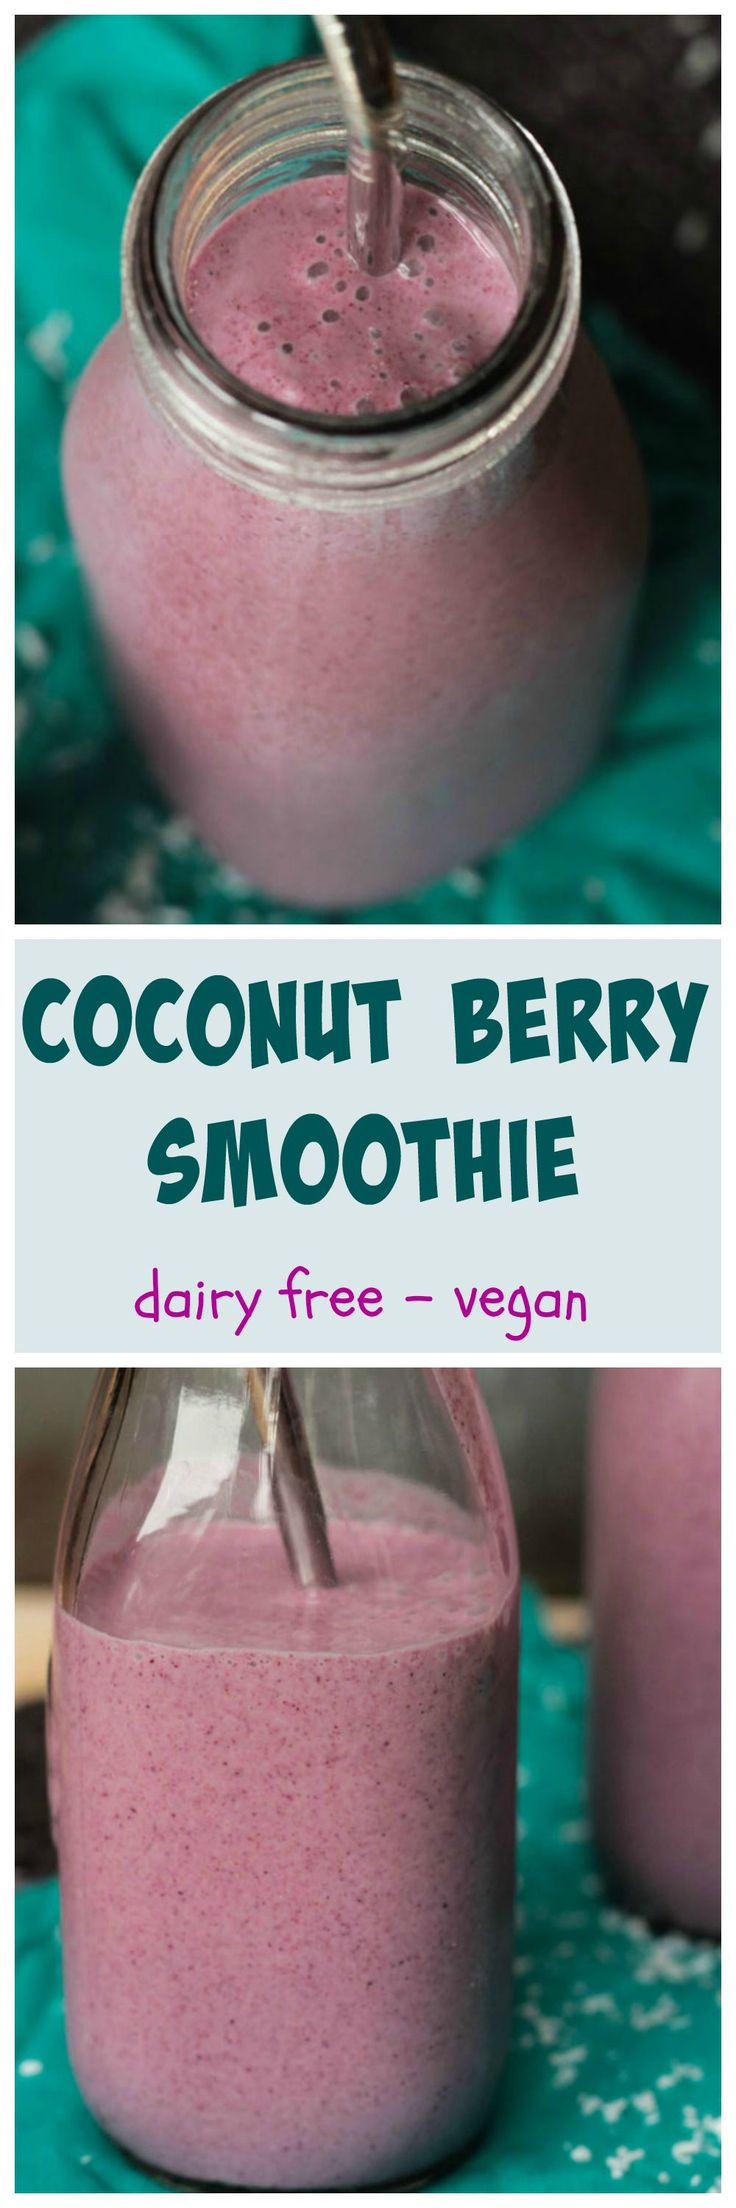 Coconut Berry Smoothie - a #creamy #delicious pretty in pink #smoothie using #coconutwater instead of plant milk. #vegan #dairyfree #berries #coconut